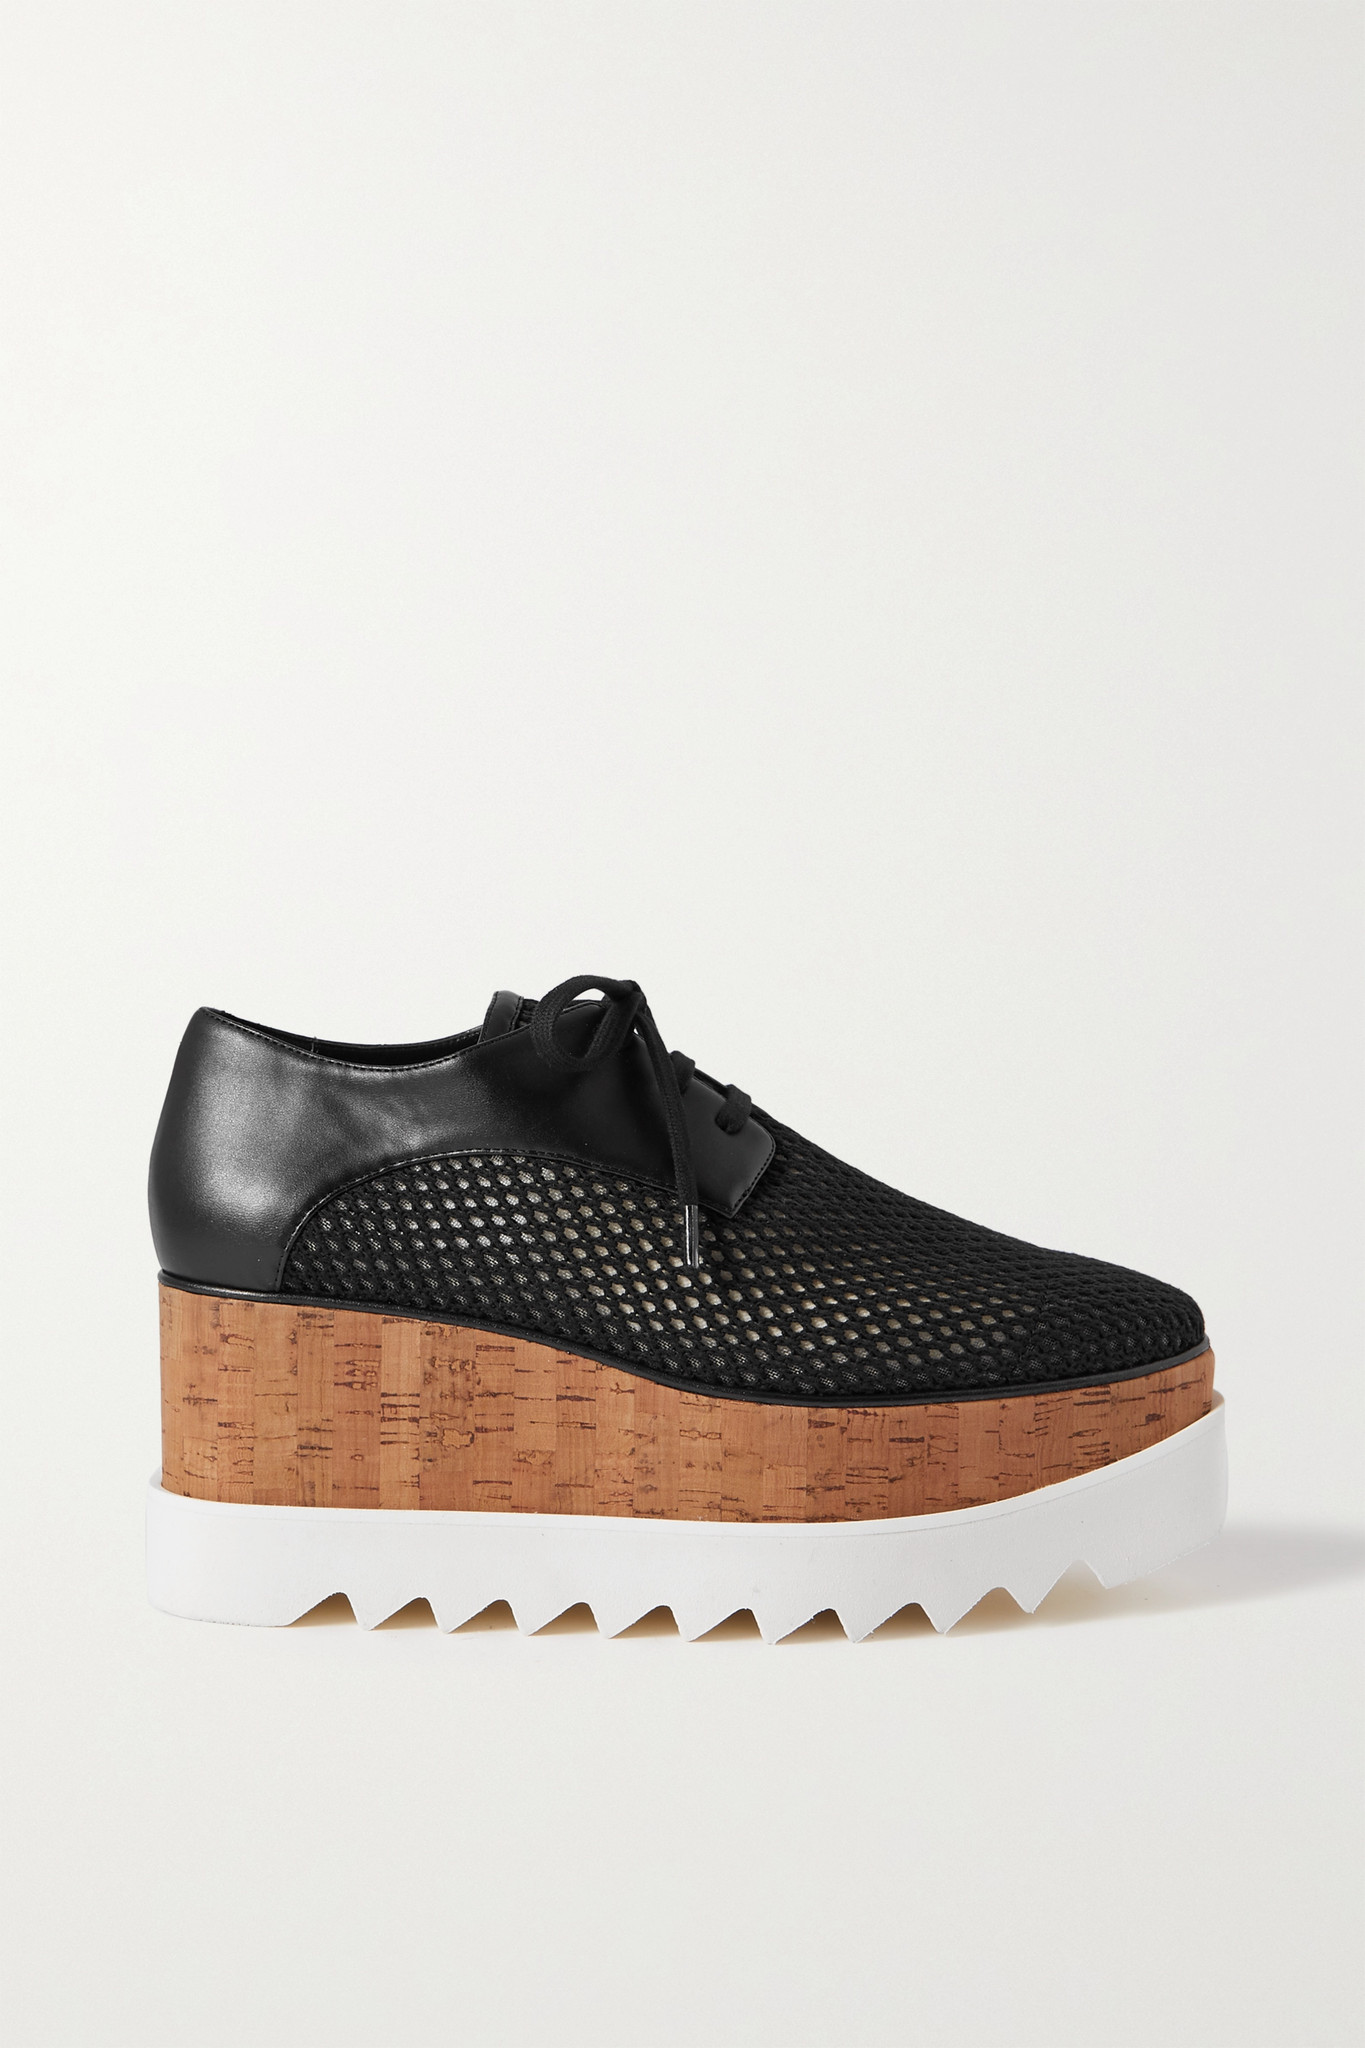 STELLA MCCARTNEY - Elyse Mesh And Vegetarian Leather Platform Brogues - Black - IT36.5